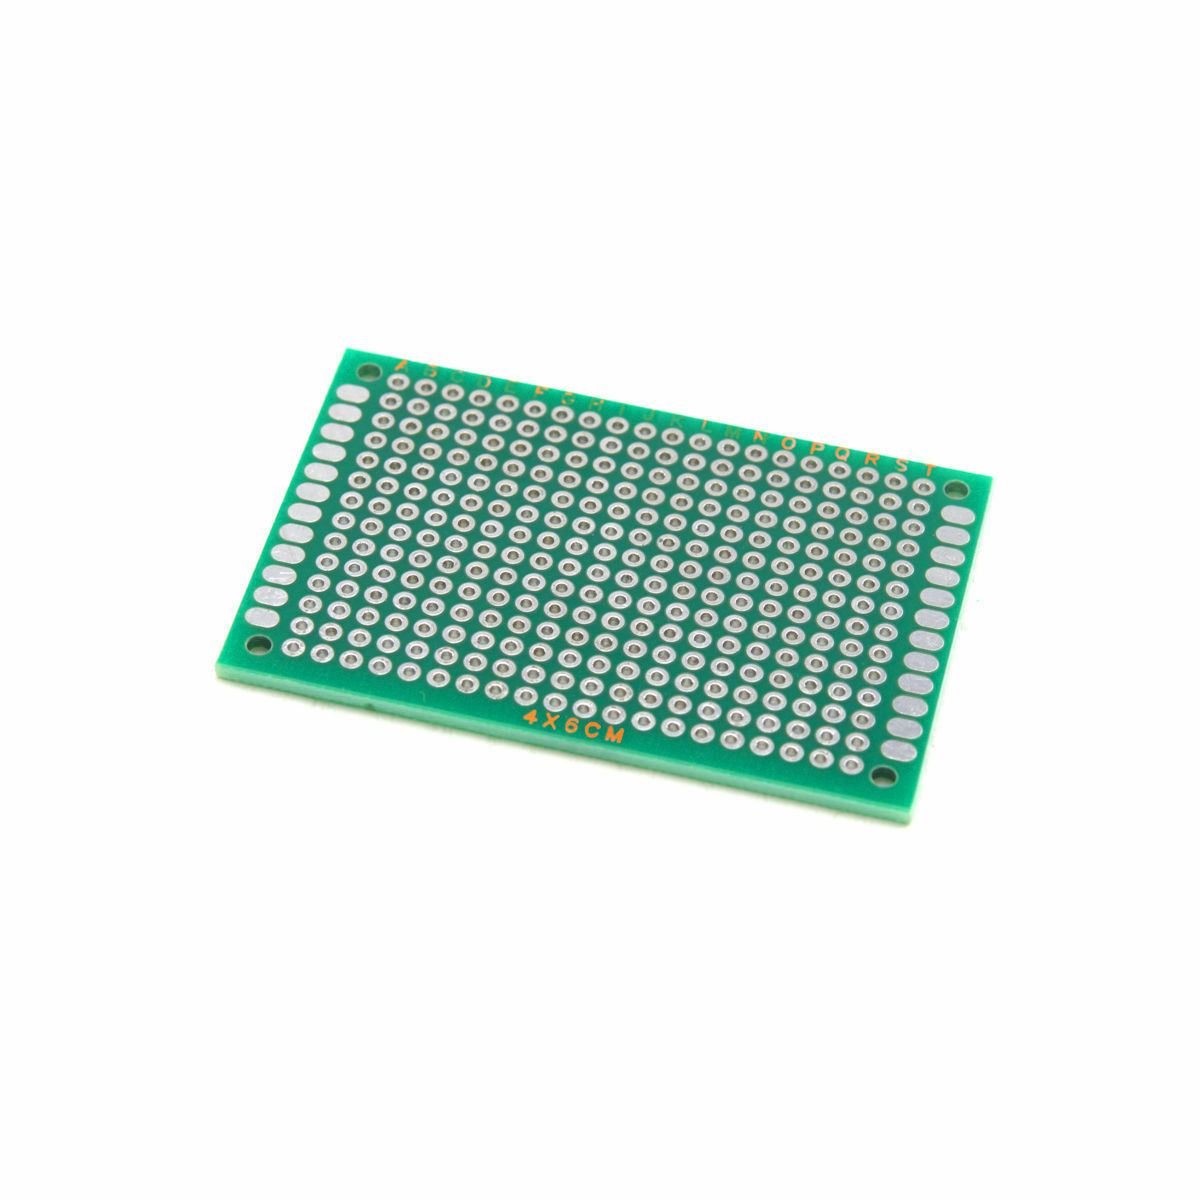 Double Sided Prototyping Circuit Board Univesal Printed Prototype Stripboard Pcb Price Protoboard Arduino Pi